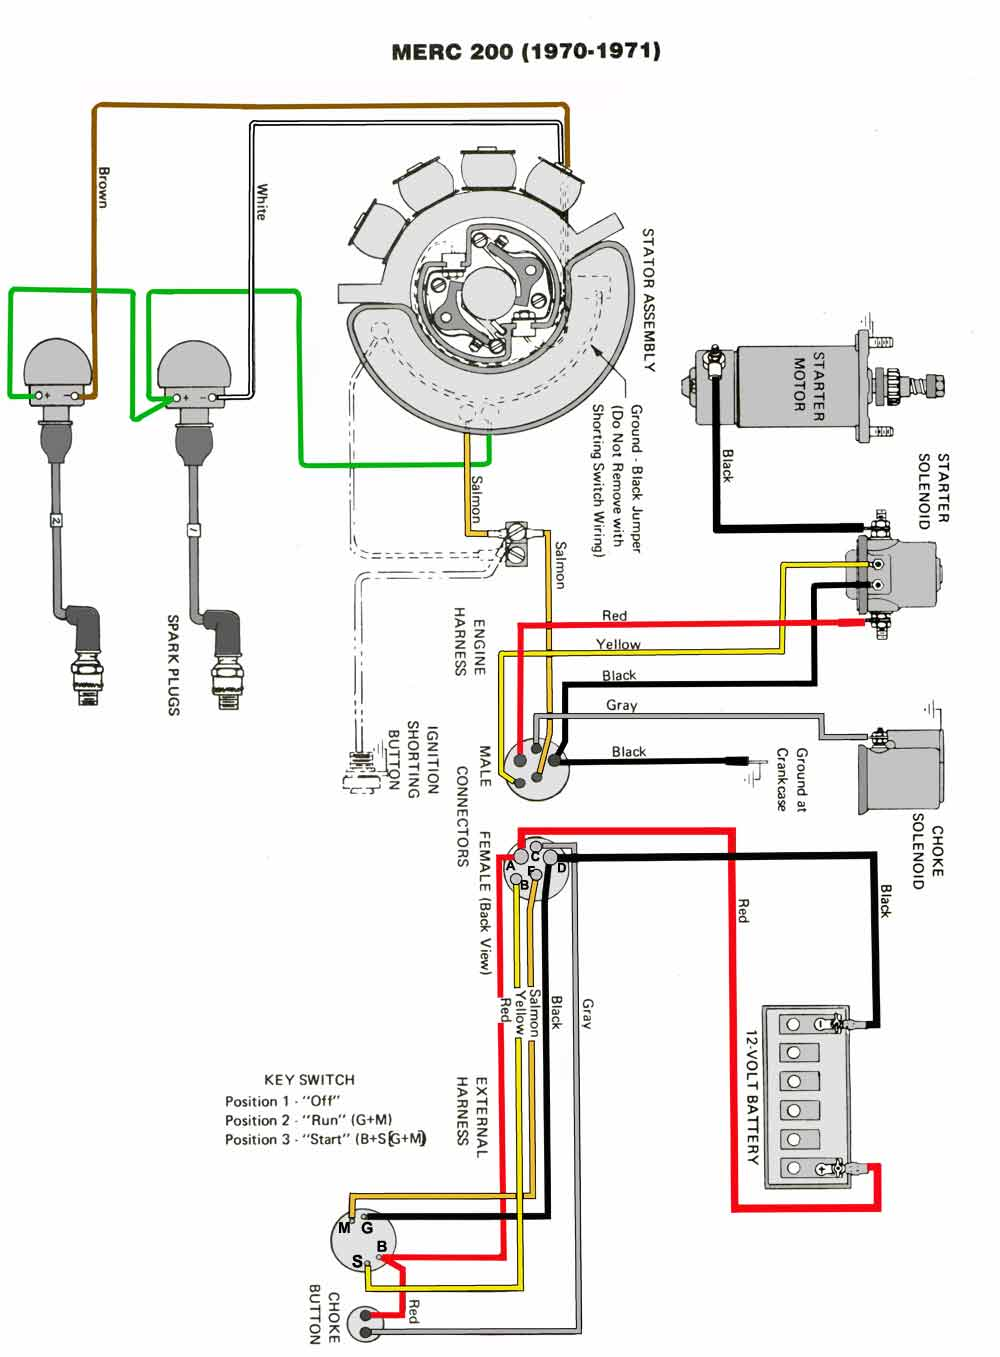 medium resolution of 40 hp yamaha wiring diagram wiring diagram hub rh 9 4 wellnessurlaub 4you de 40 hp johnson wiring diagram 1989 yamaha 40 hp outboard wiring diagram